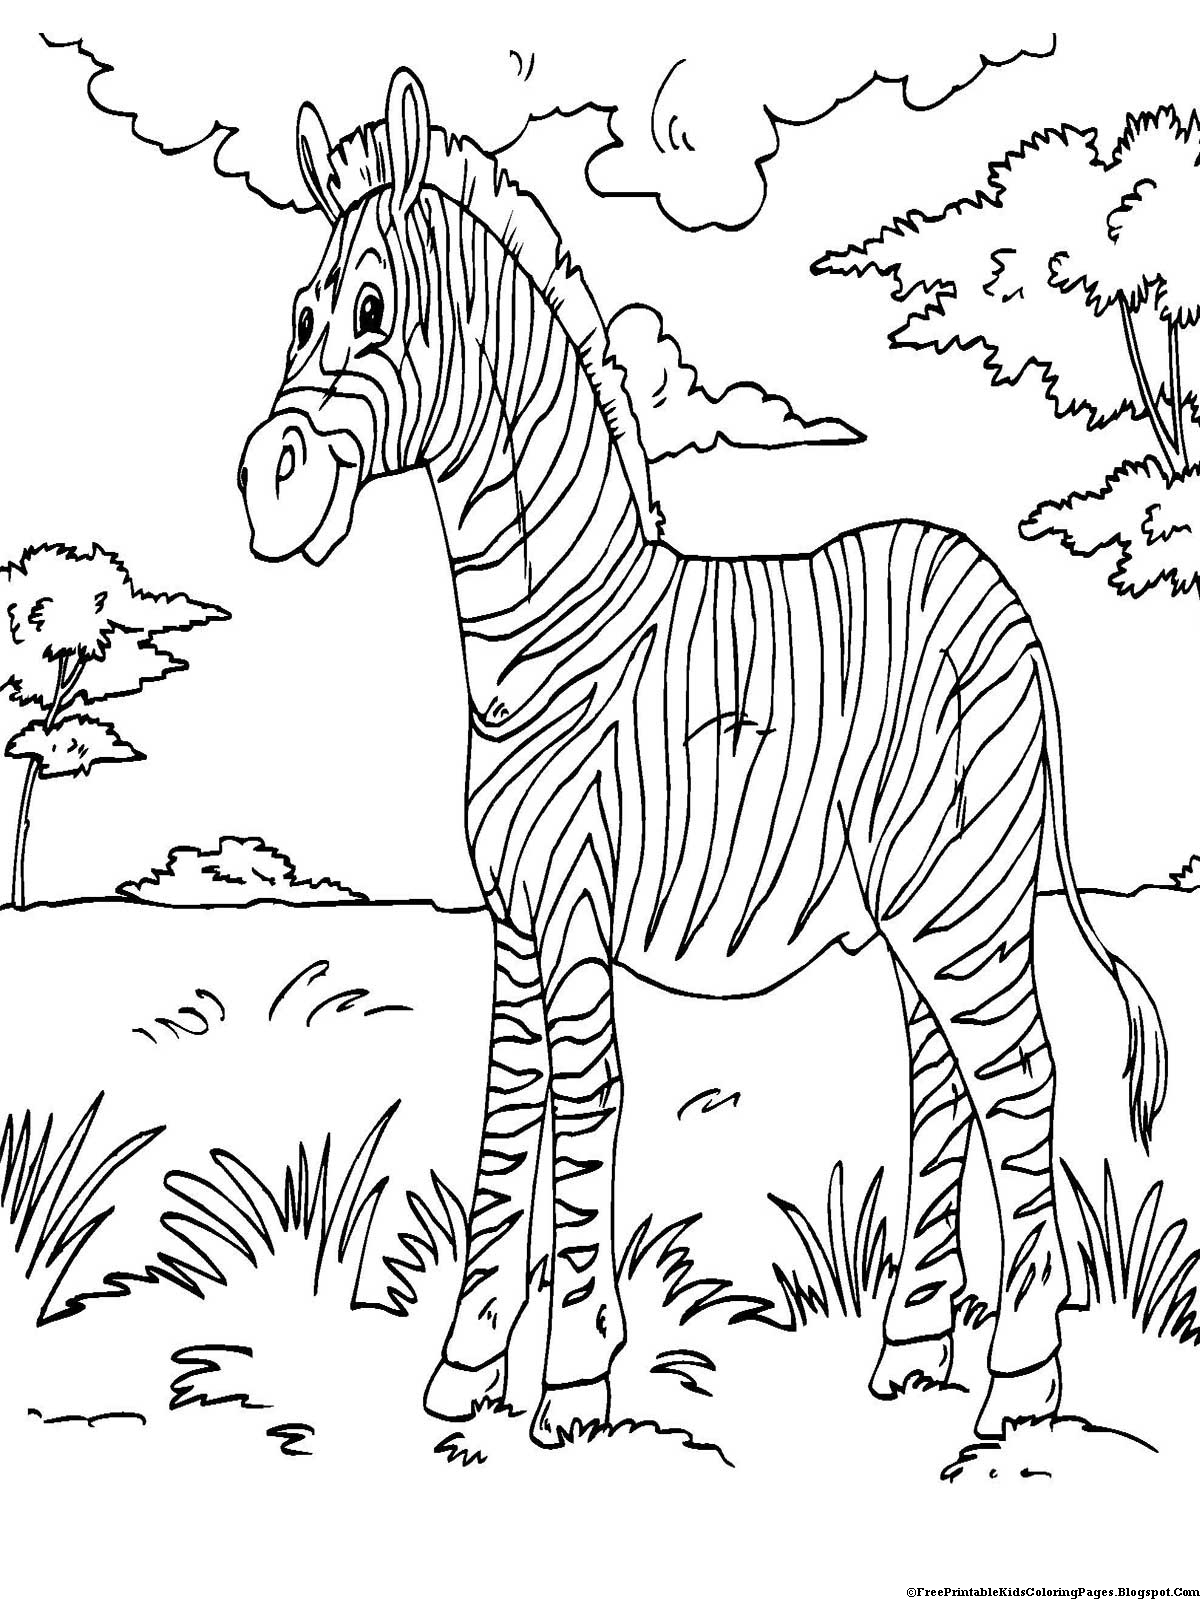 coloring the animal all animals coloring pages download and print for free animal coloring the